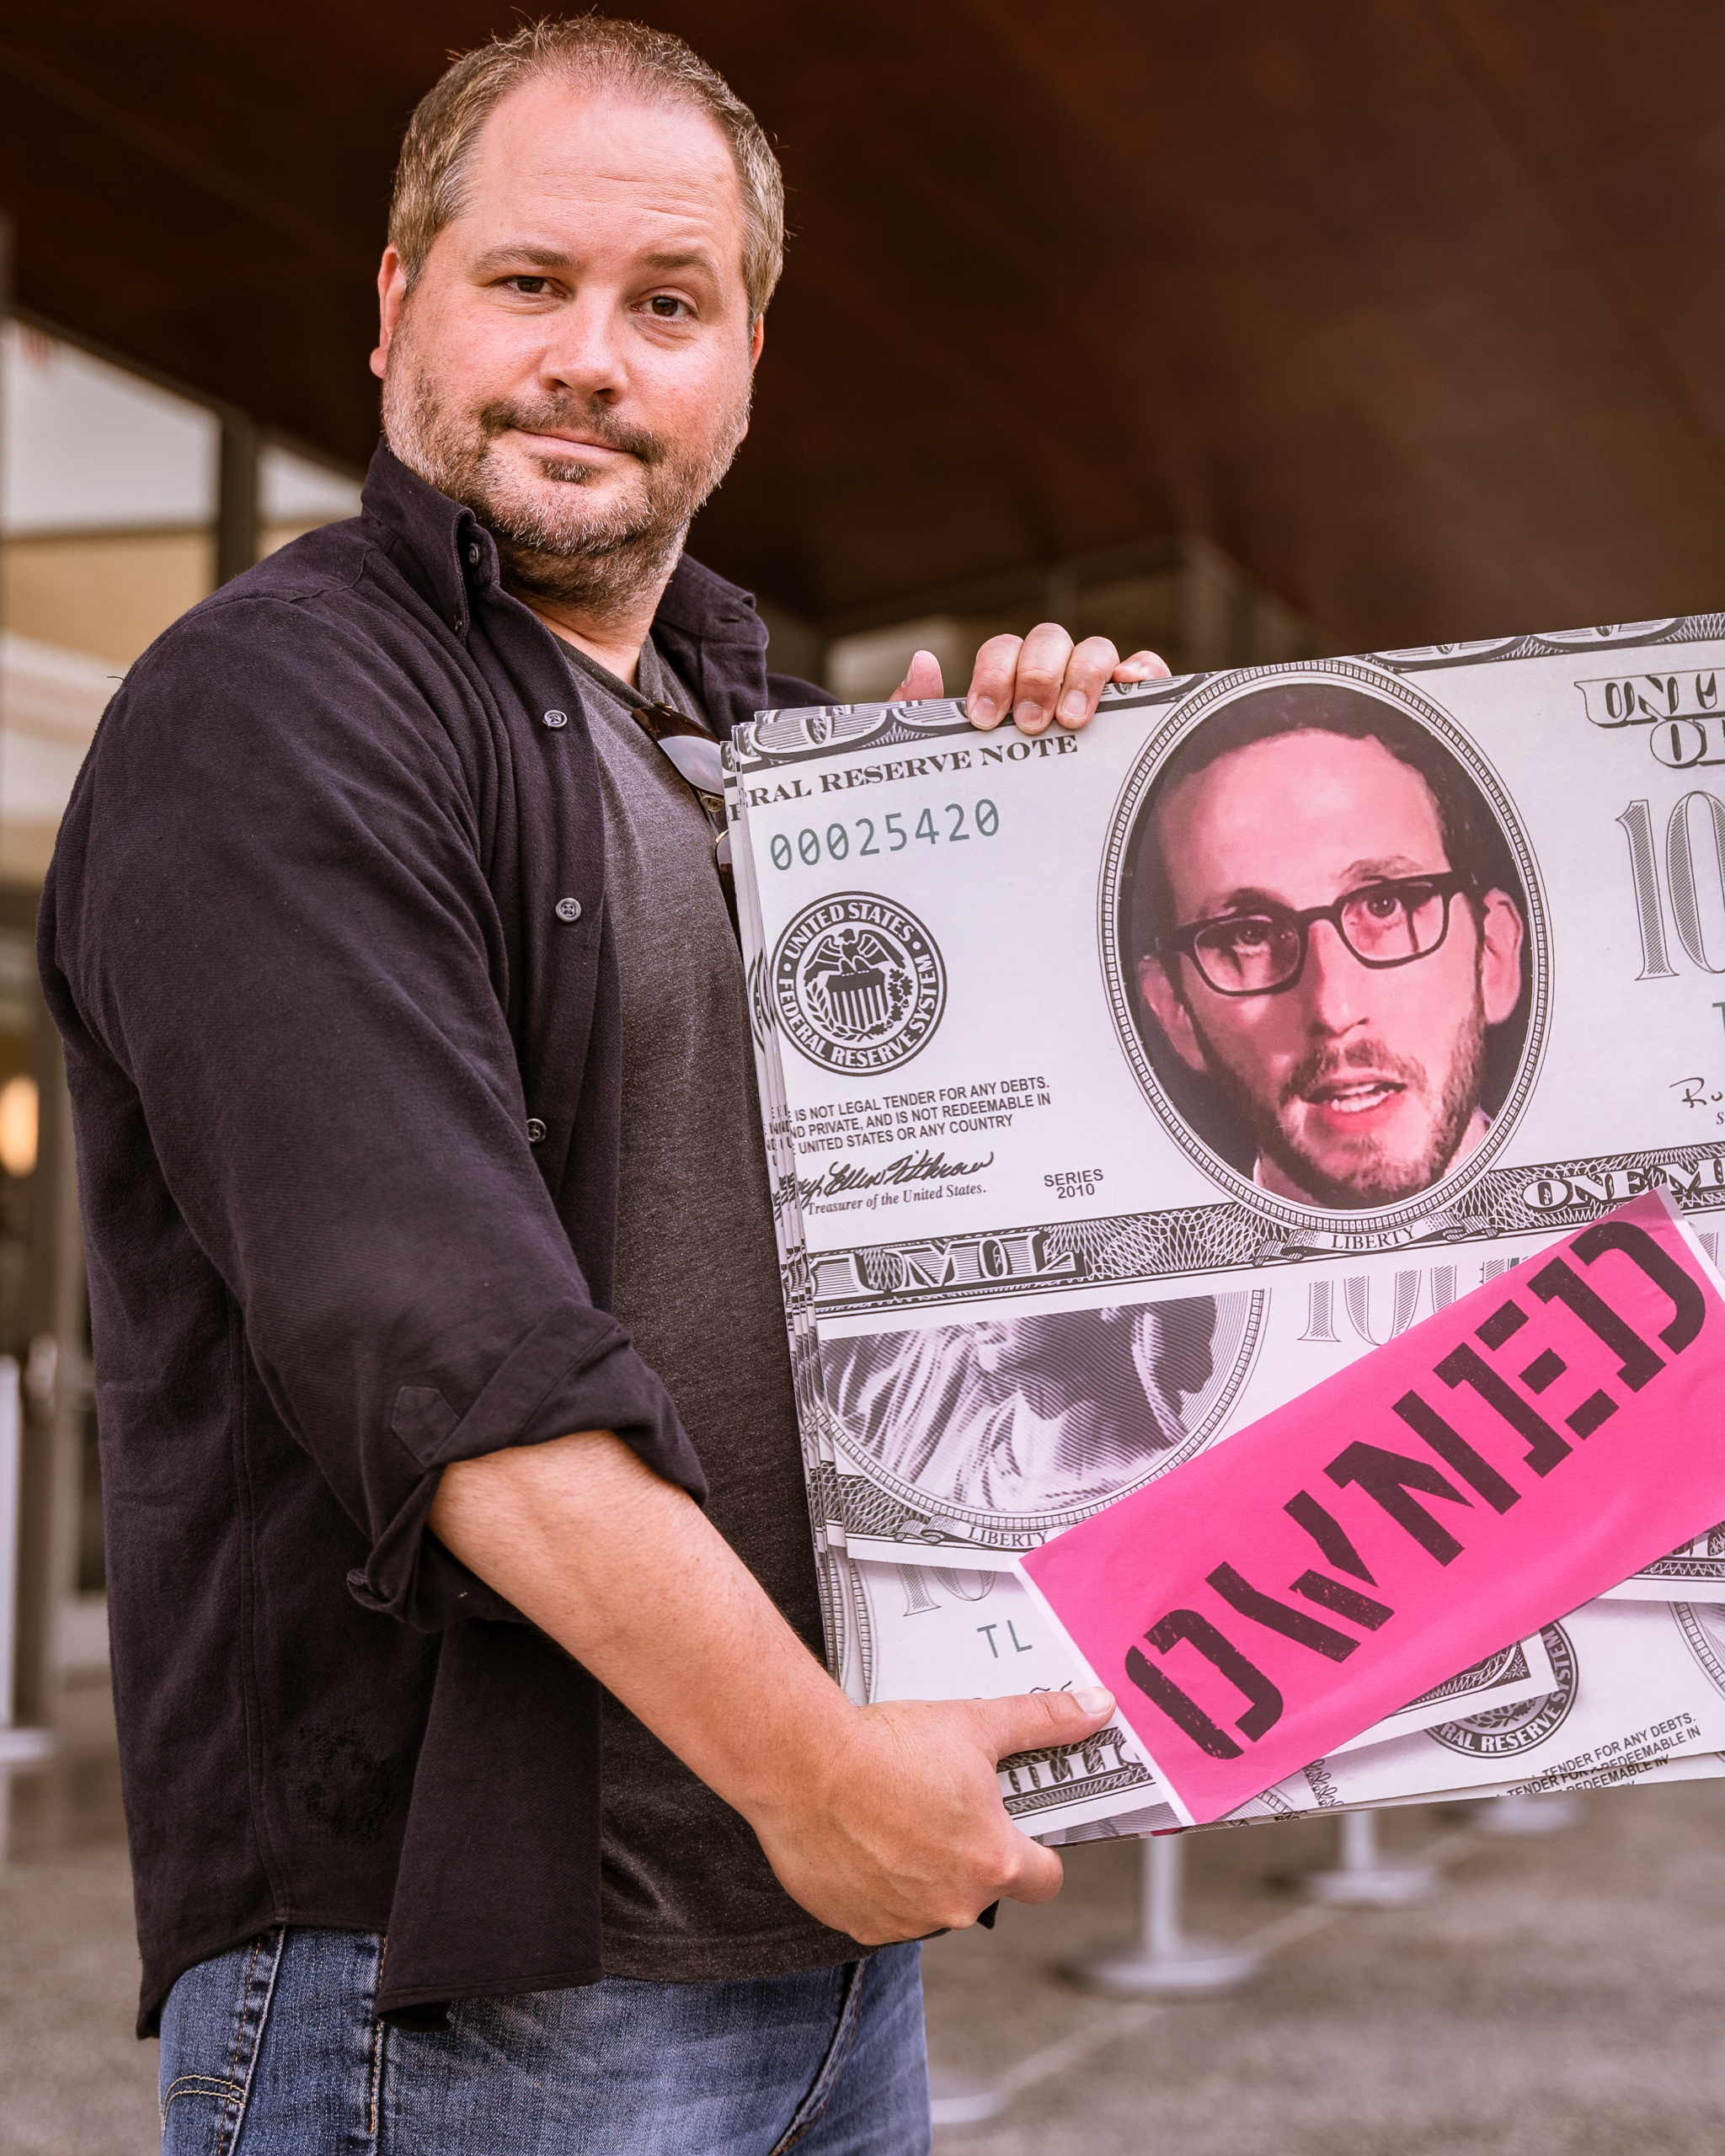 """Lawyer and journalist Chris Legras of Santa Monica holds a sign questioning the motives of California State Senator Scott Weiner's (SD11 – San Francisco) SB 50 which proposes new approaches to California's housing issues, outside the the Broad Stage at the SMC Performing Arts Center on Thursday, May 9, 2019. Legras said, """"I worry about SB-50, it's a poorly planned, rushed solution to a problem we all know exists. It's going to effect the poor and marginalized the most."""" The SMC Public Policy Institute is presenting its 8th Annual Spring Symposium, """"There Goes the Neighborhood, Part II: How might policy approaches prevent displacement in neighborhoods affected by gentrification?"""" from May 4-9. Tonight's final event in the series is """"Where Goes the Road to Solving California's Housing Crisis? A Keynote Discussion with Legislative Leaders."""" The panel includes California state legislators Senator Ben Allen (SD26 – Santa Monica) and Senator Scott Weiner (SD11 – San Francisco), author of SB 50 which proposes bold approaches to California's housing issues, and Santa Monica Mayor Gleam Davis, a former Co-Chair of Santa Monicans for Renters' Rights and leading advocate for Santa Monica's innovative policy solutions and funding for affordable housing."""" (Glenn Zucman/The Corsair)"""